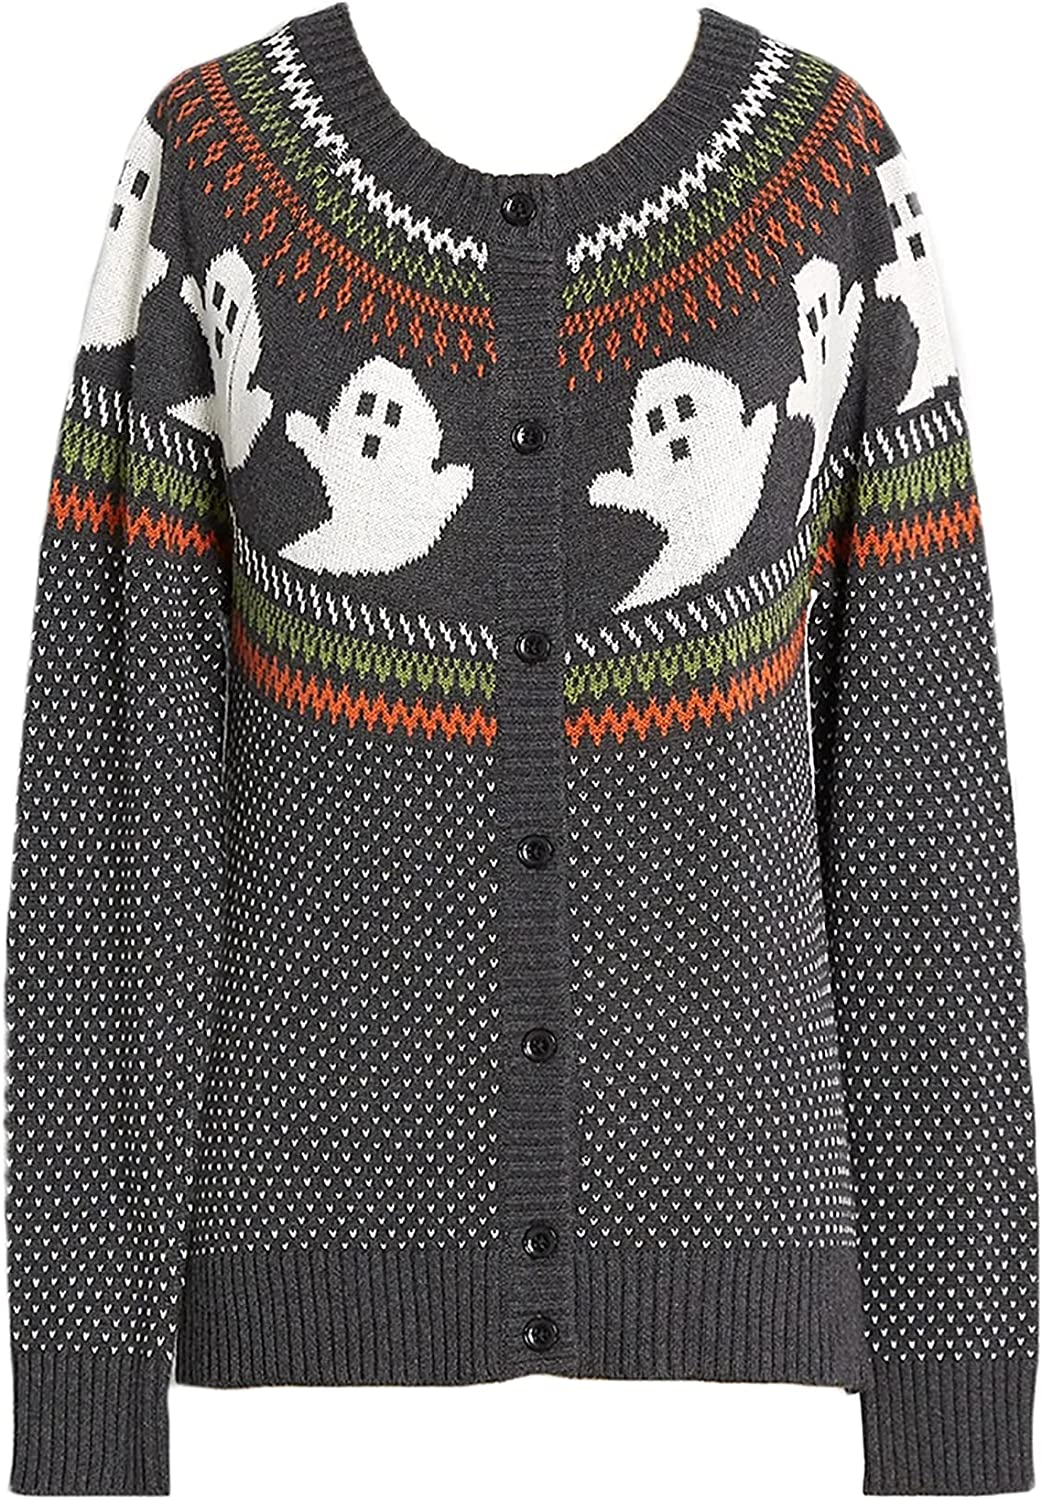 YEMOCILE Knitted Sweater for Women With Cute Ghost Pattern Gothic Streetwear with Long Sleeves for Girls